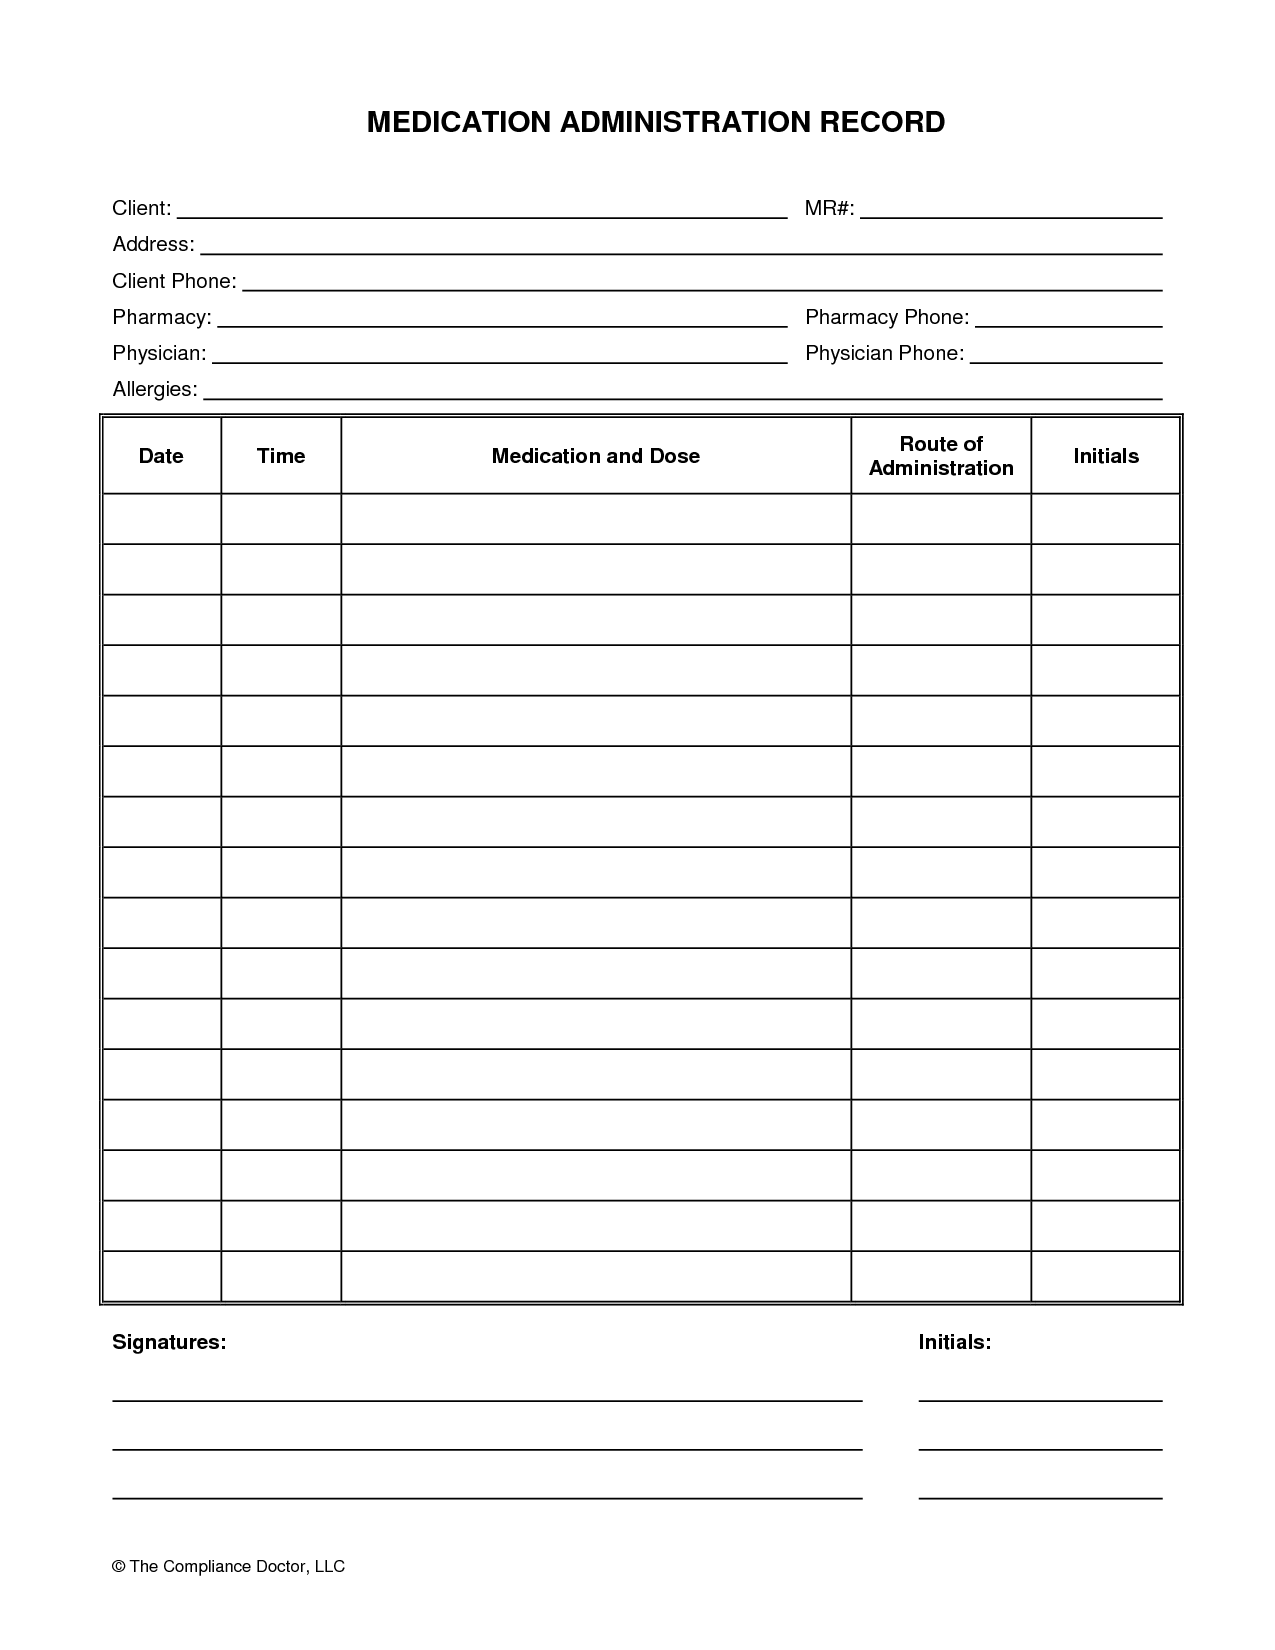 medication signing sheet template - medication administration record form organization